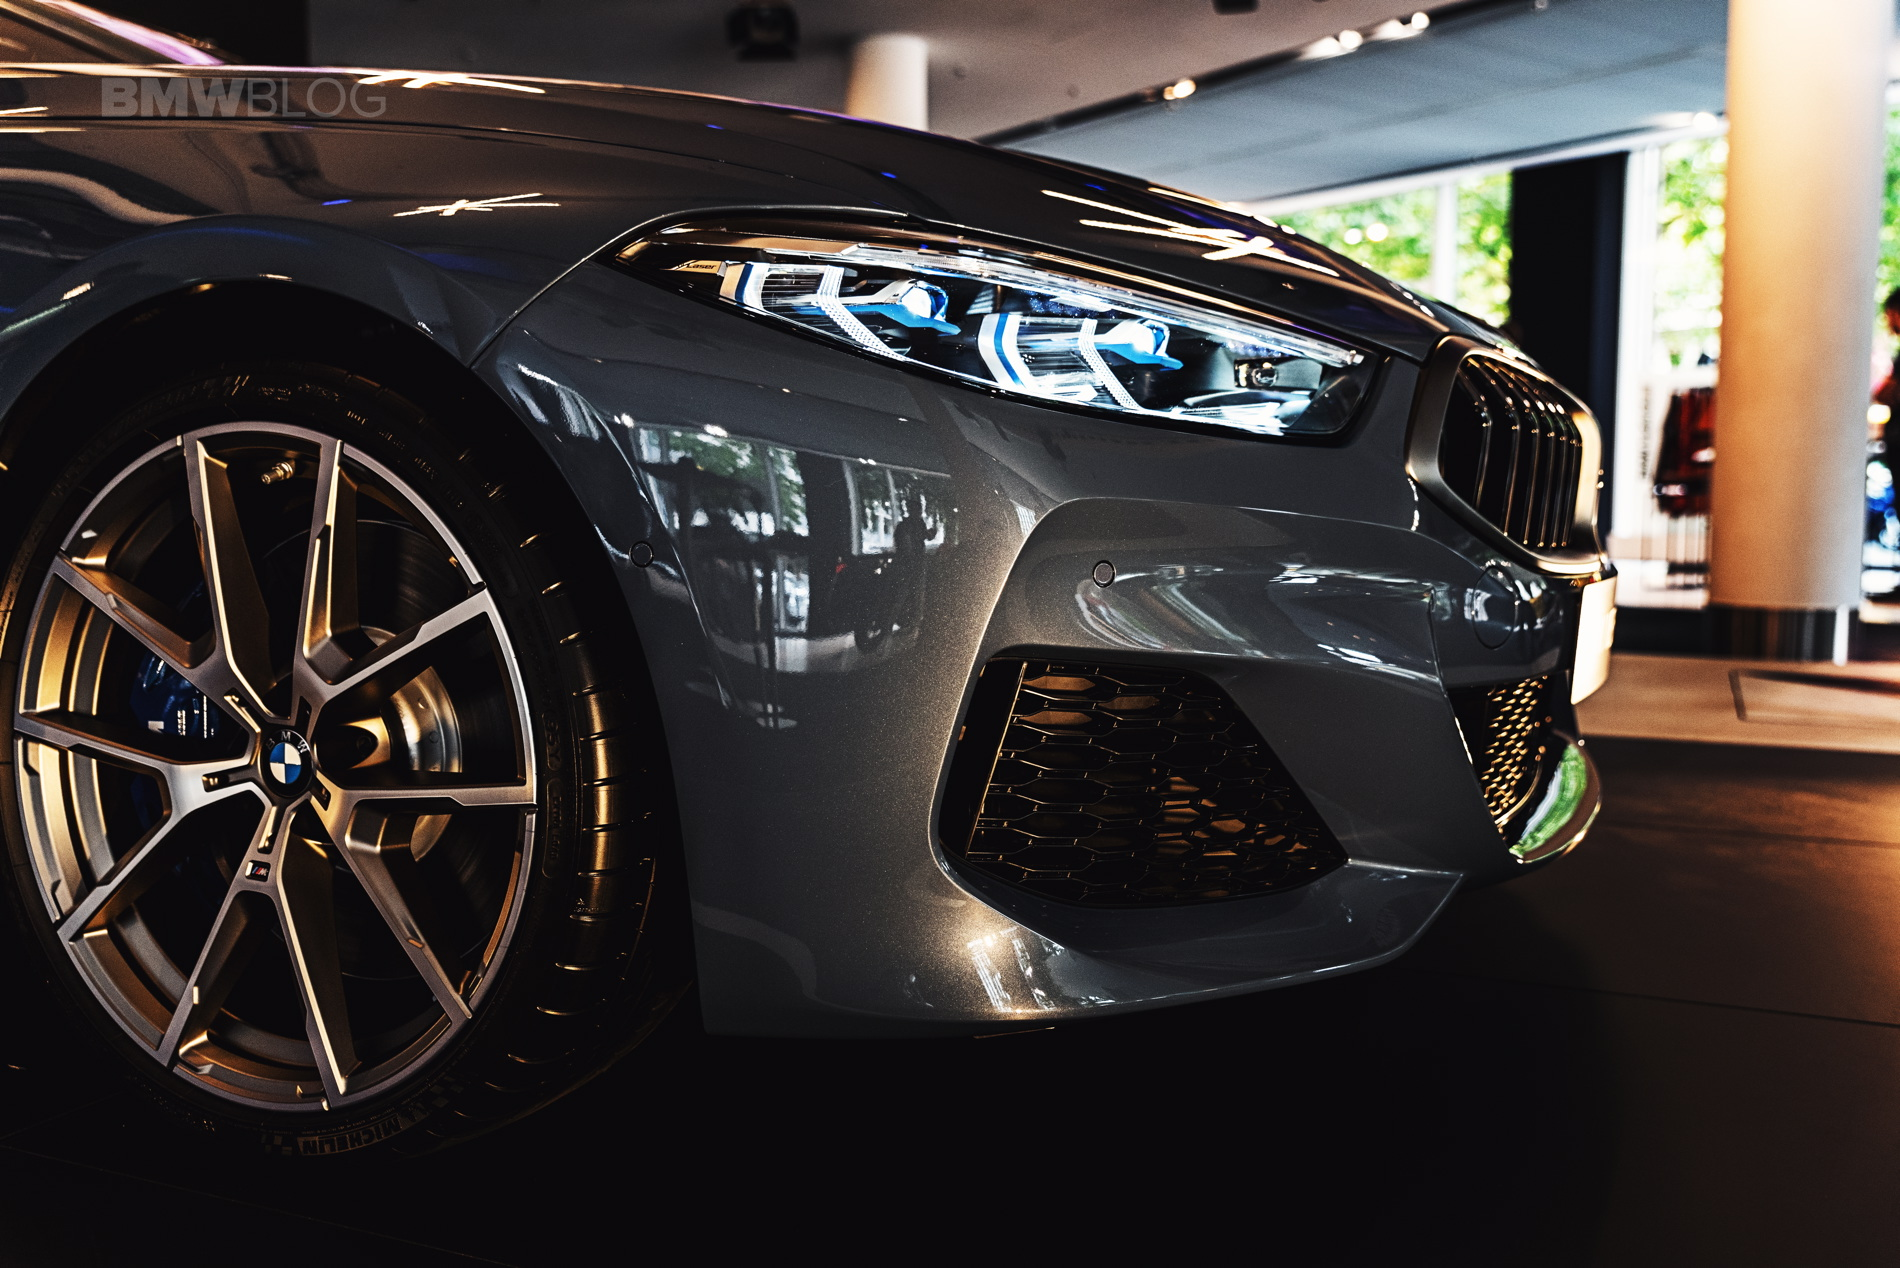 Cool Photos Of The 2019 Bmw M850i Coupe